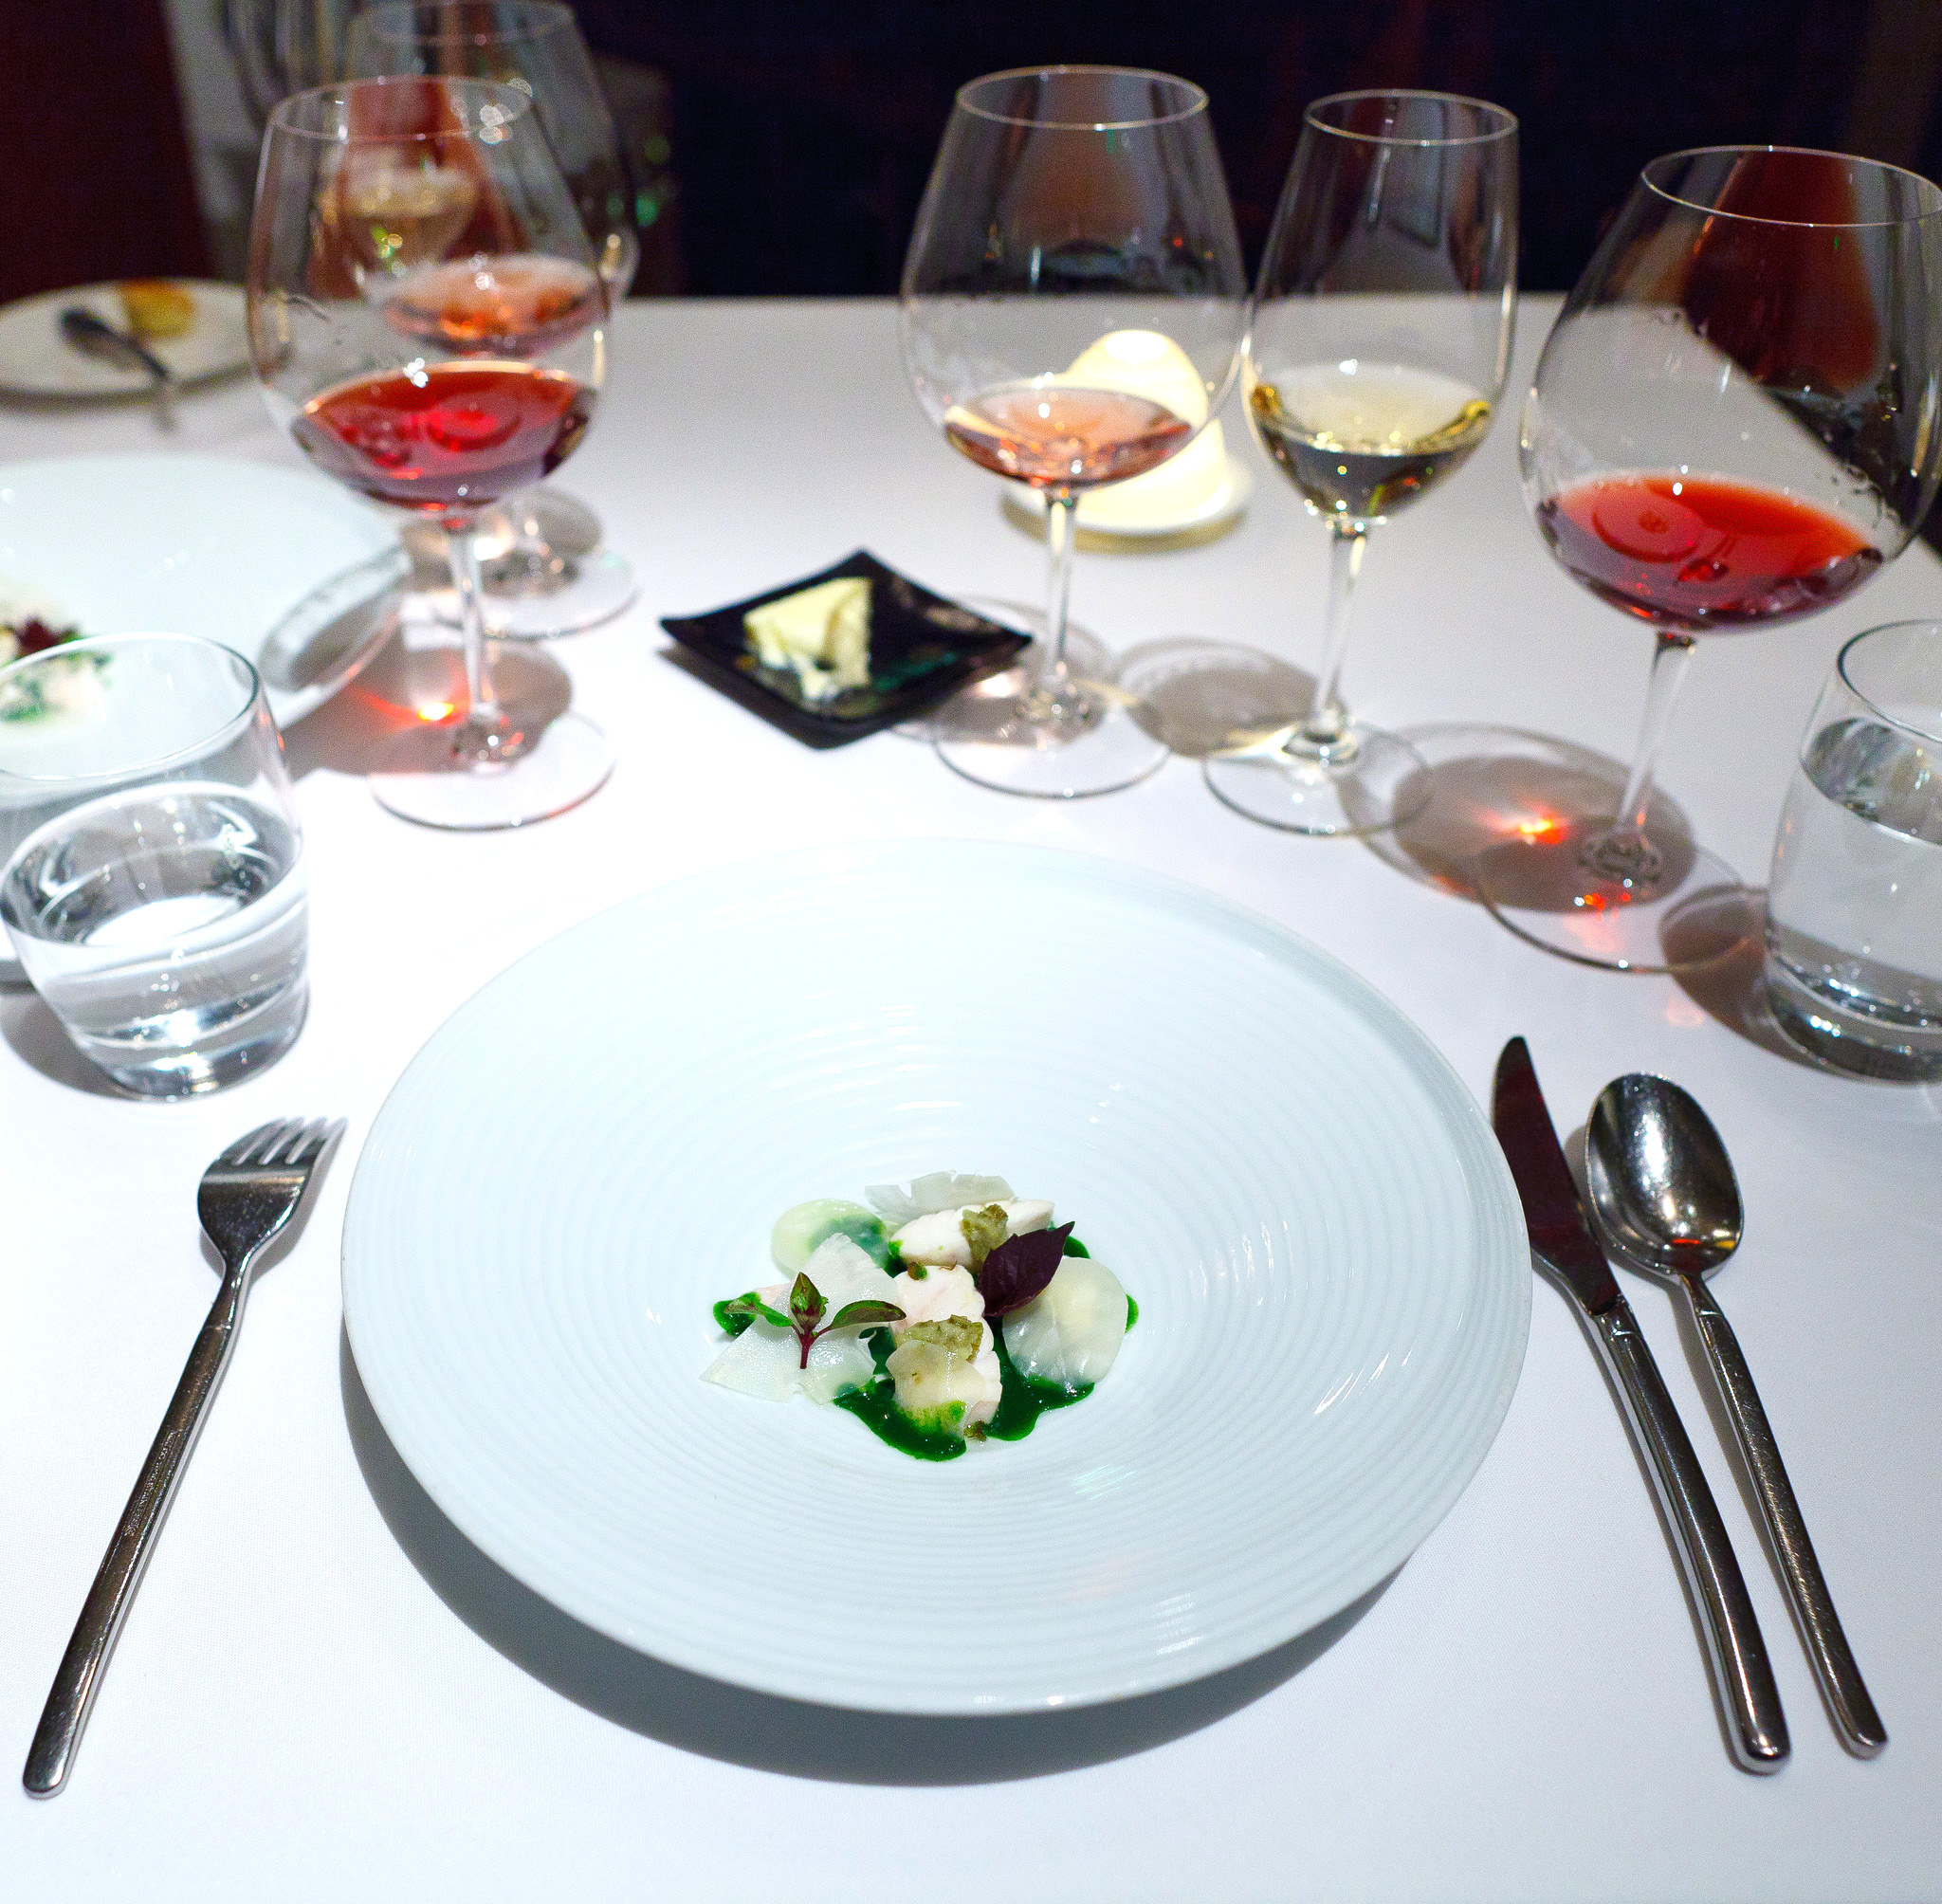 13th Course - Poached halibut served with with young celeriac, romanesco